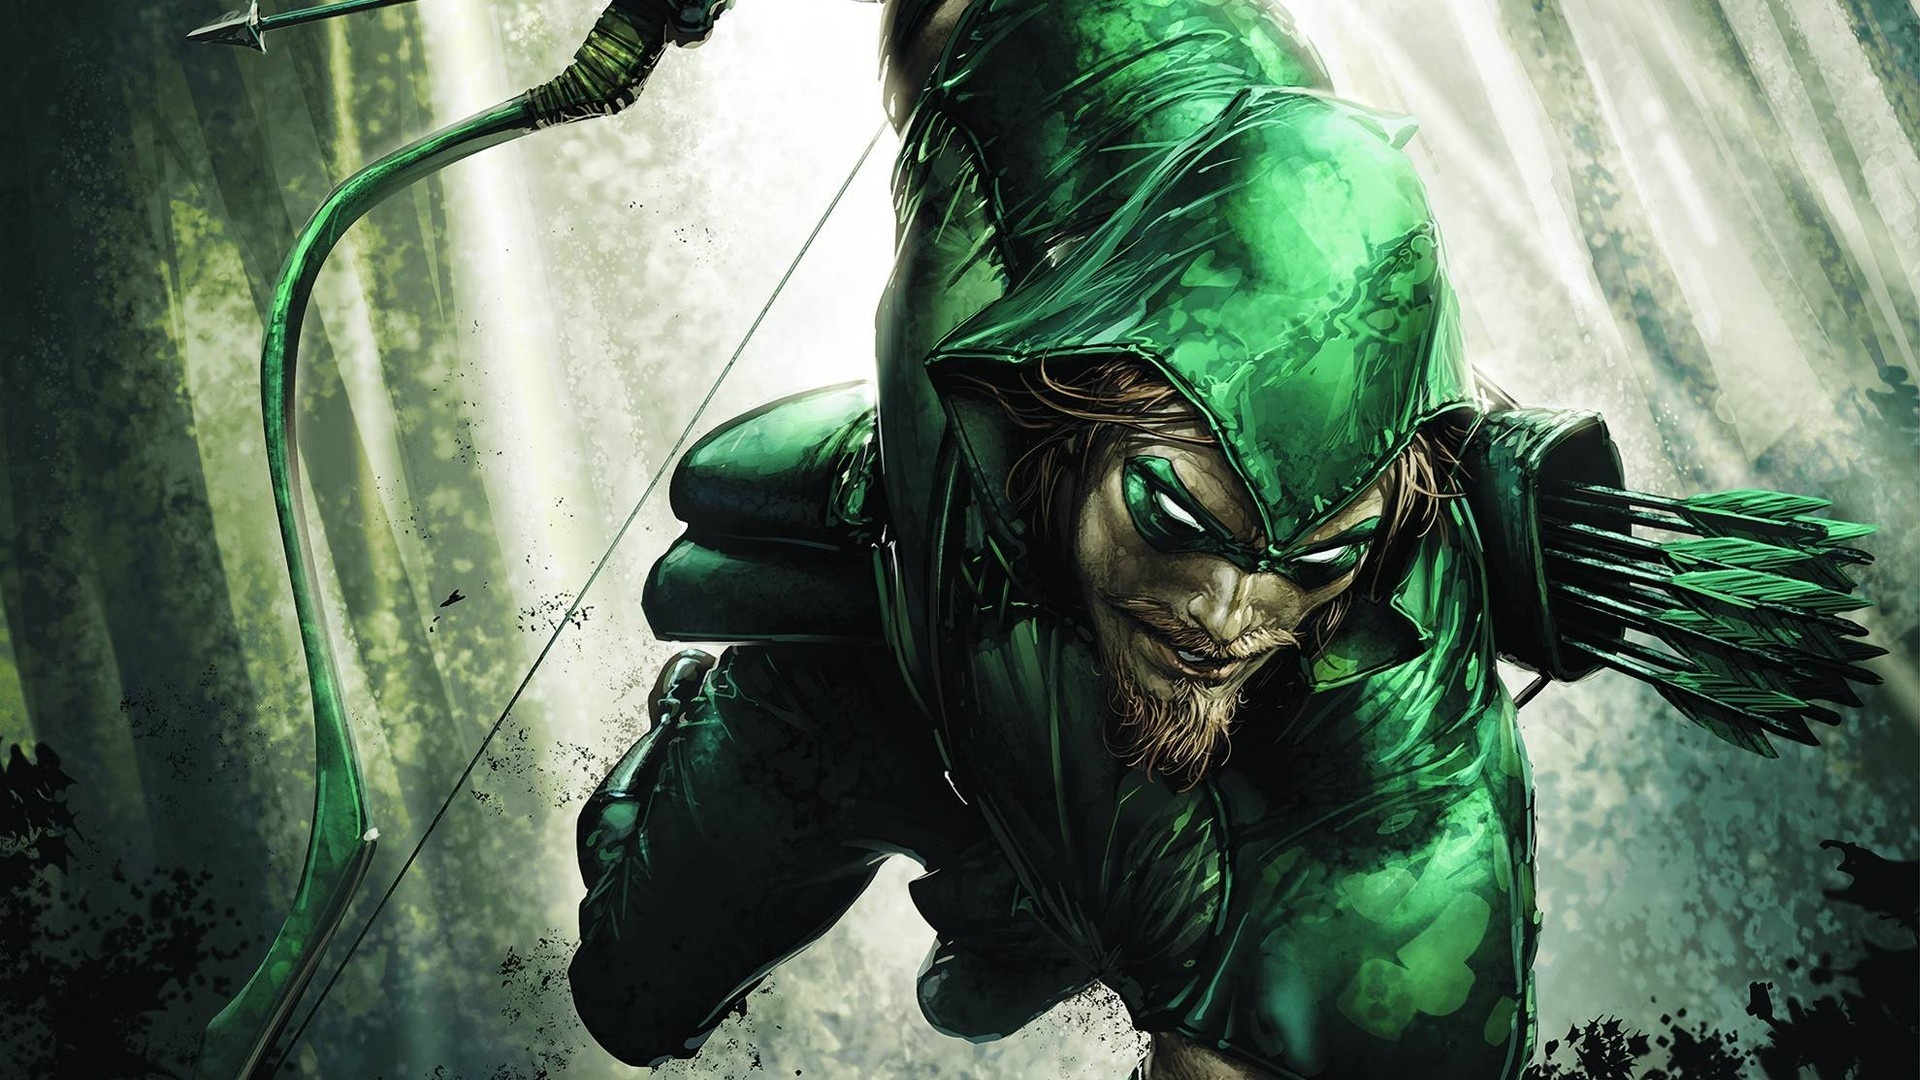 green arrow hd wallpapers for desktop download